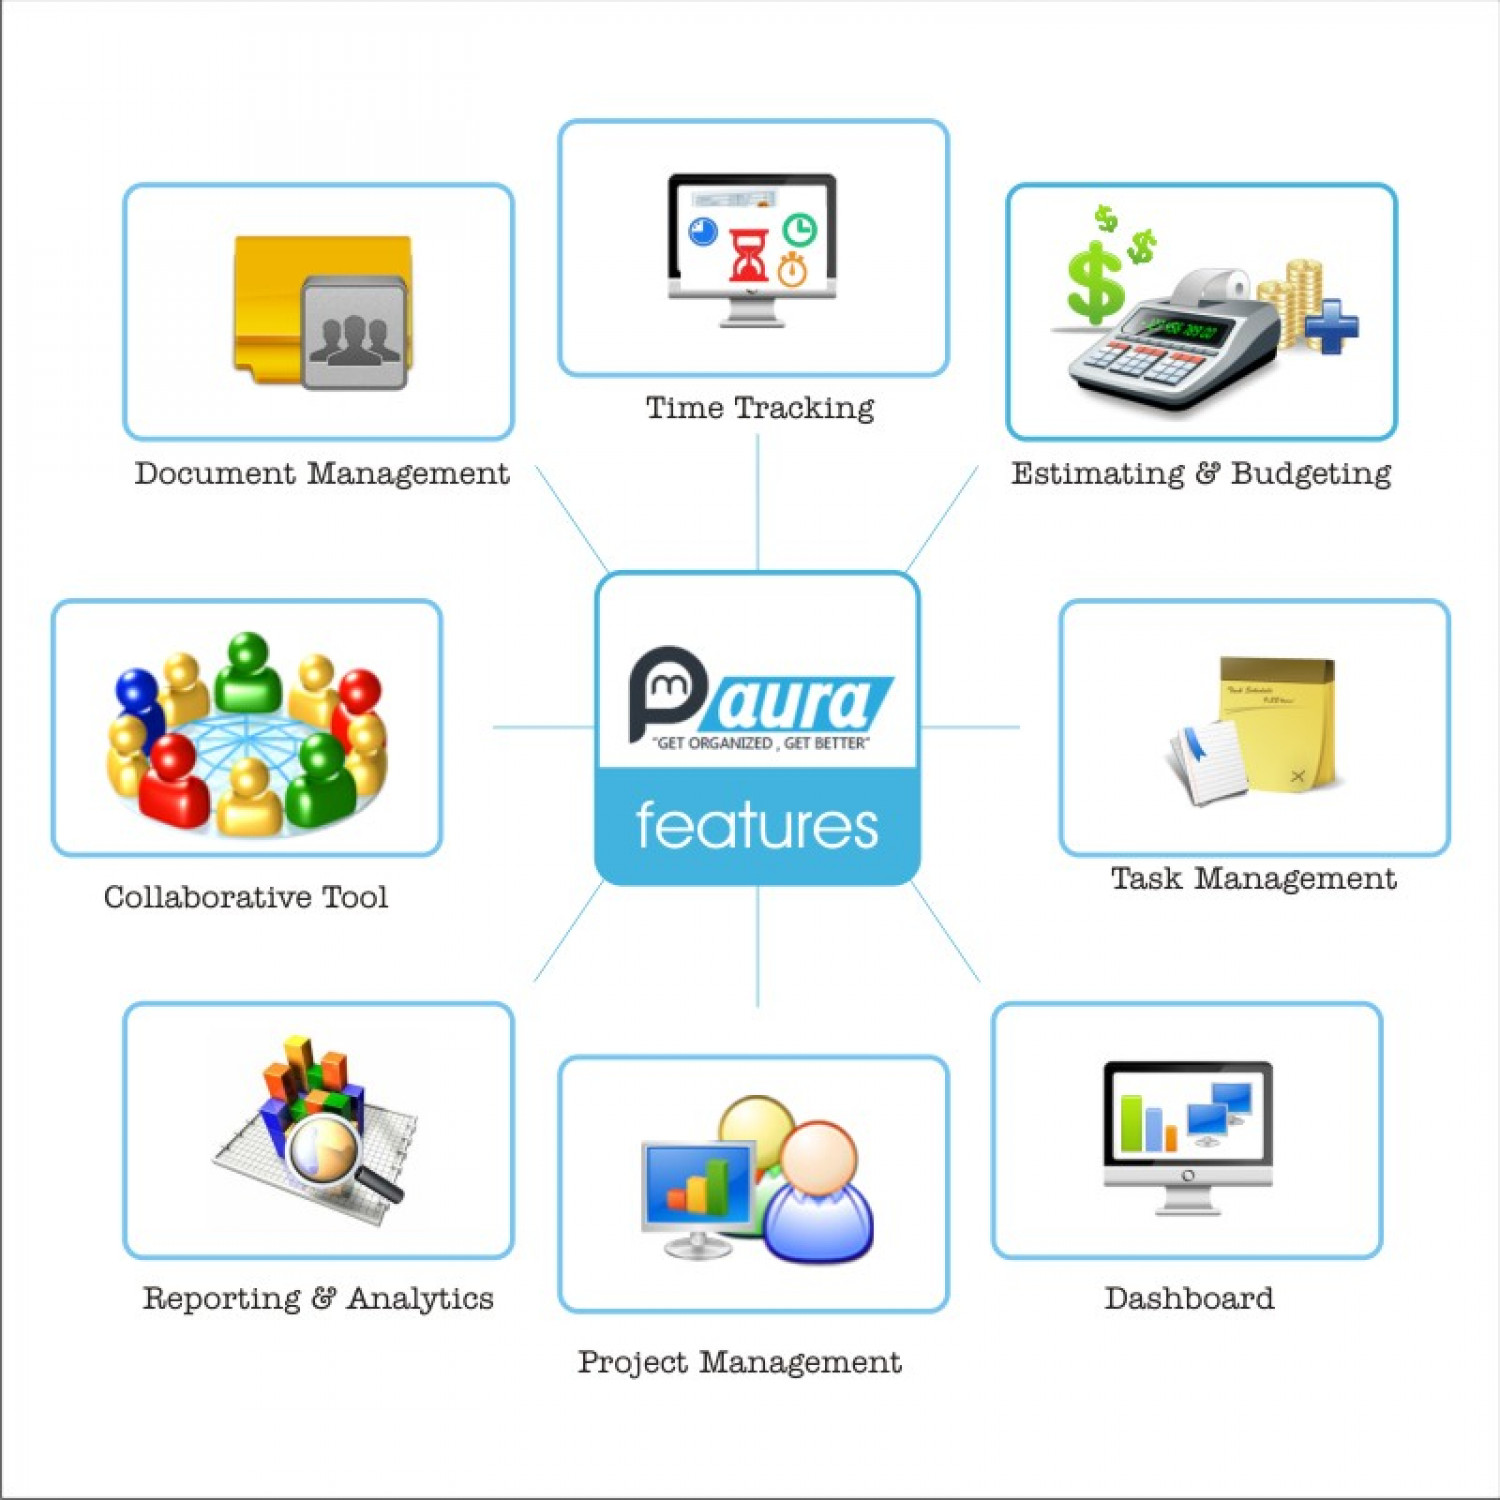 PMAura - Project Mangement Software Features Infographic